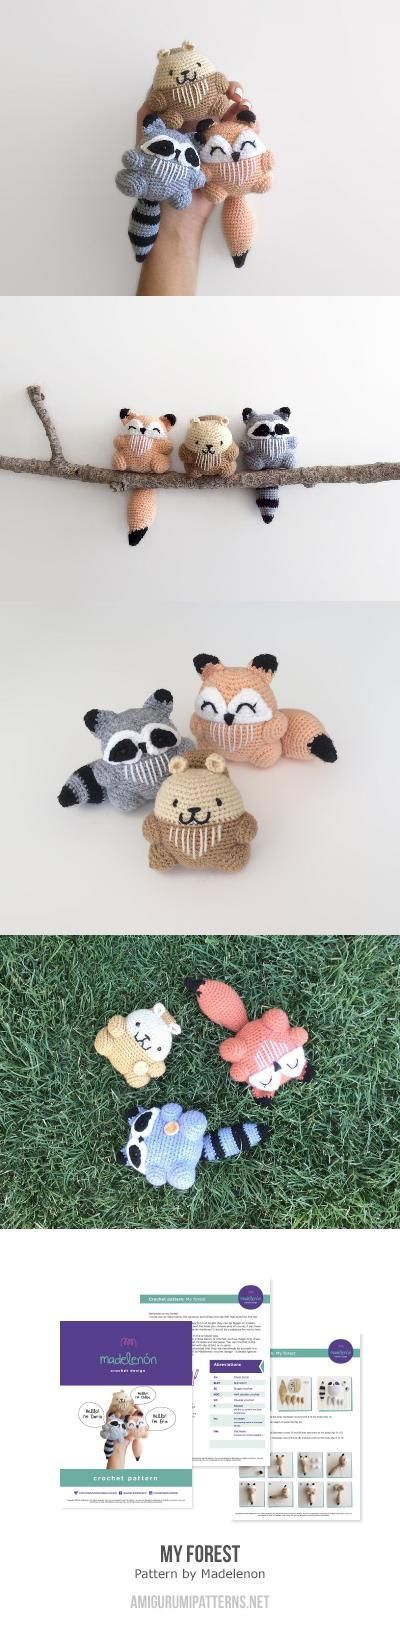 Forest Amigurumi Pattern